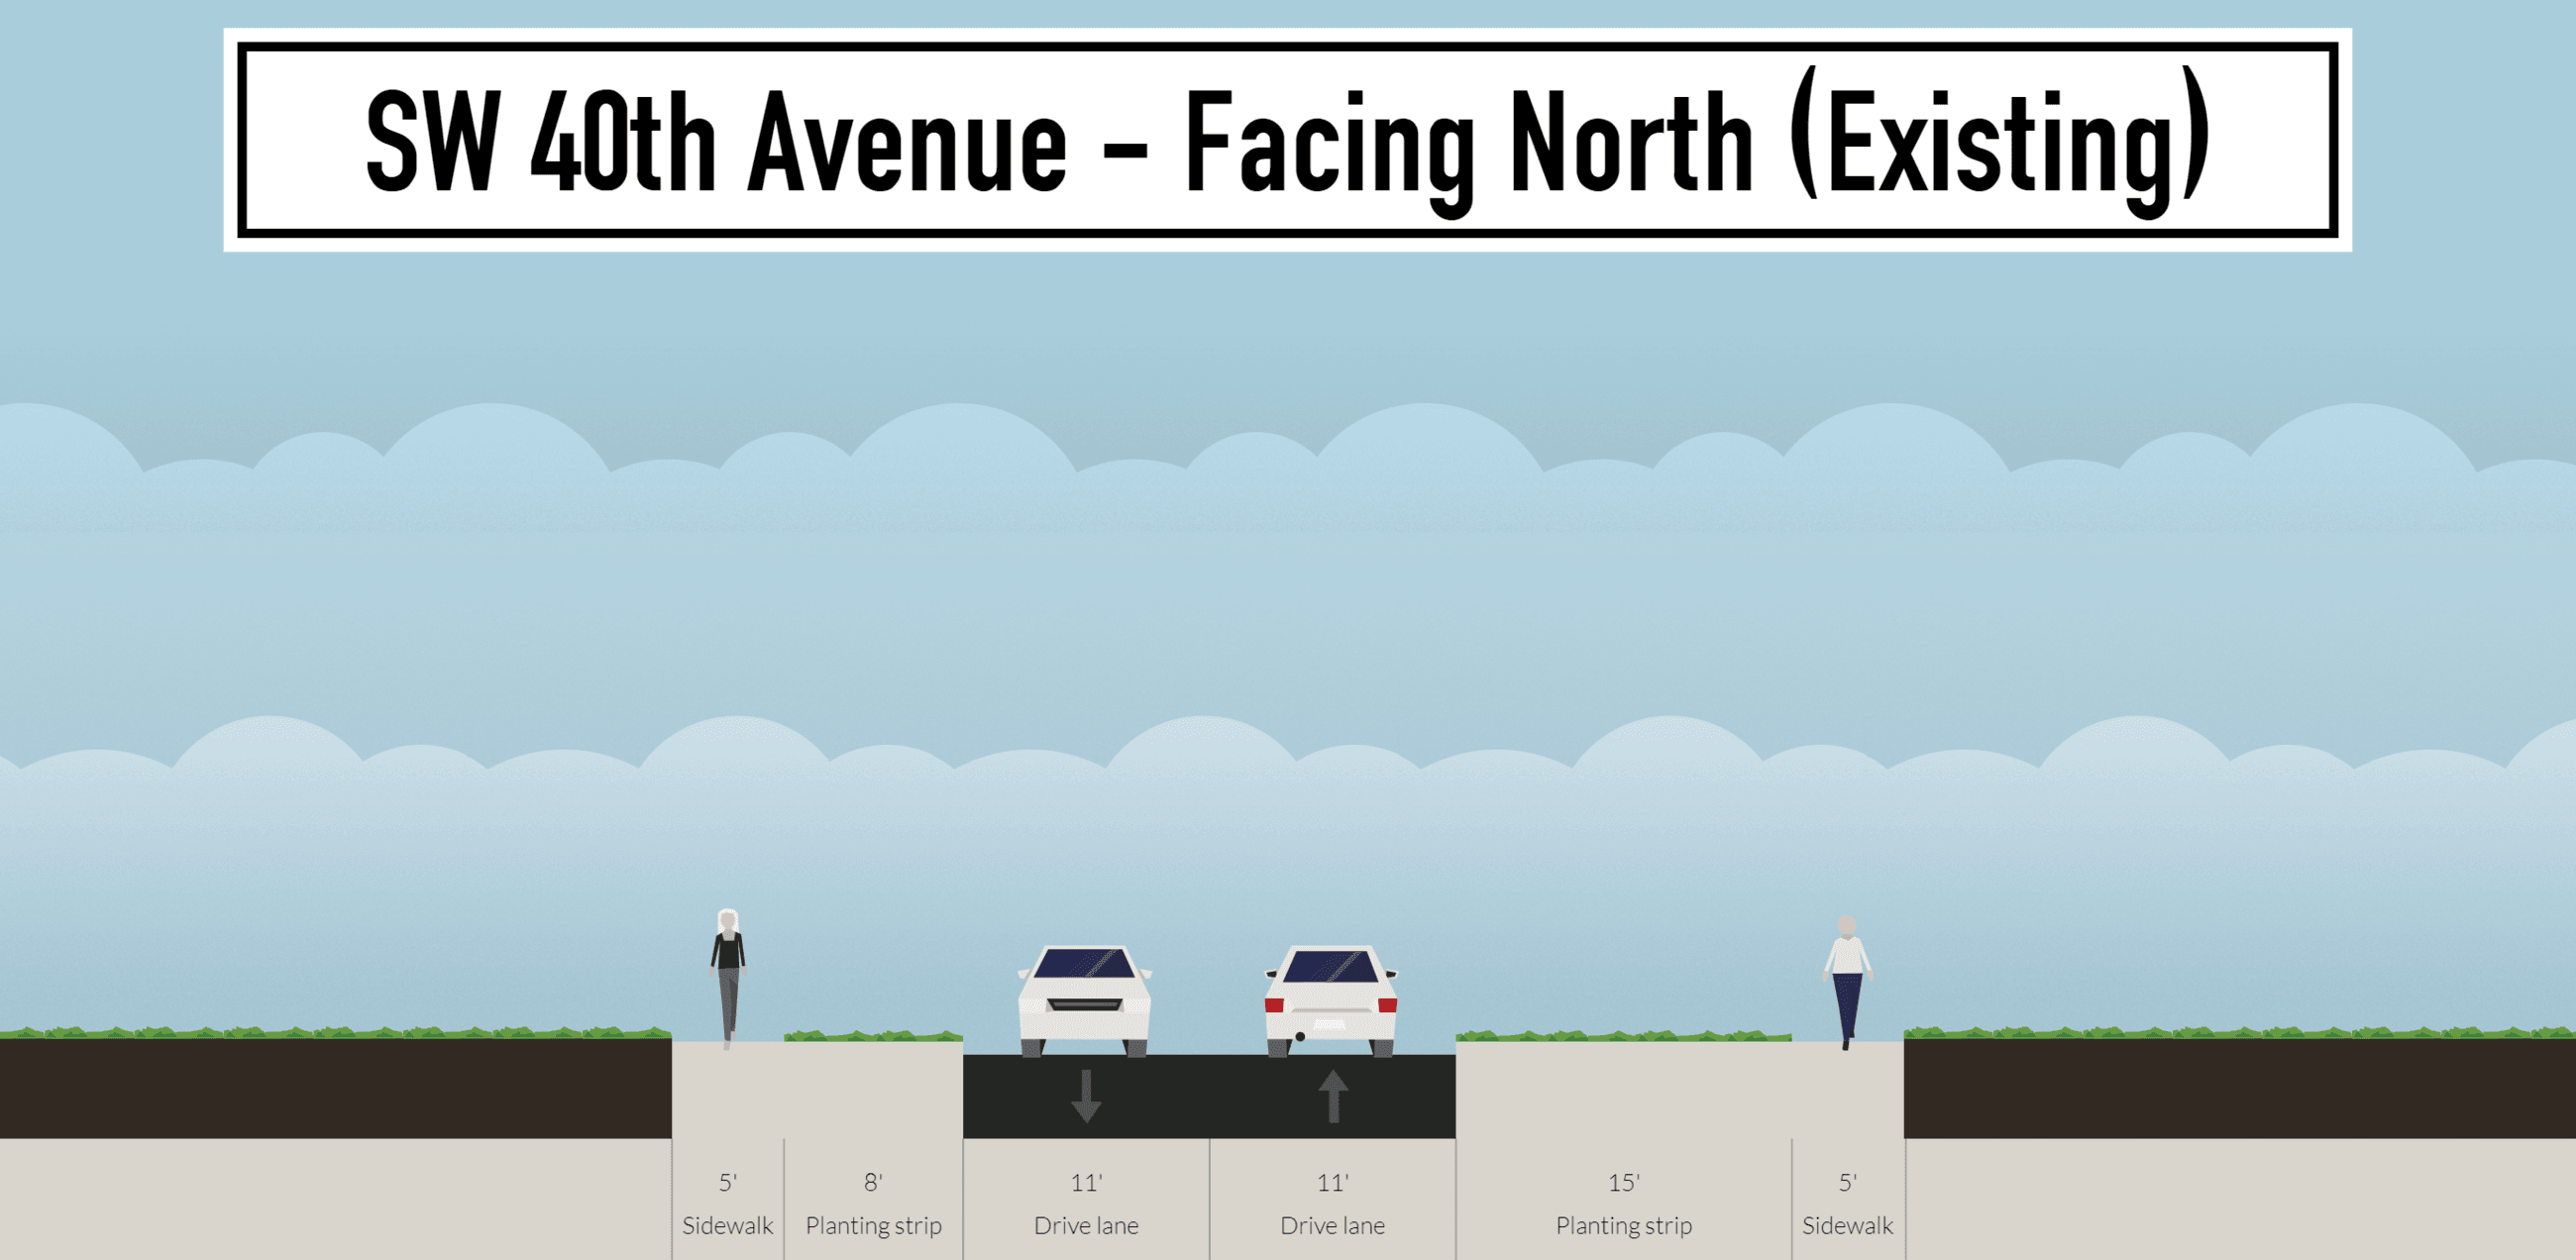 sw-40th-avenue-facing-north-existing